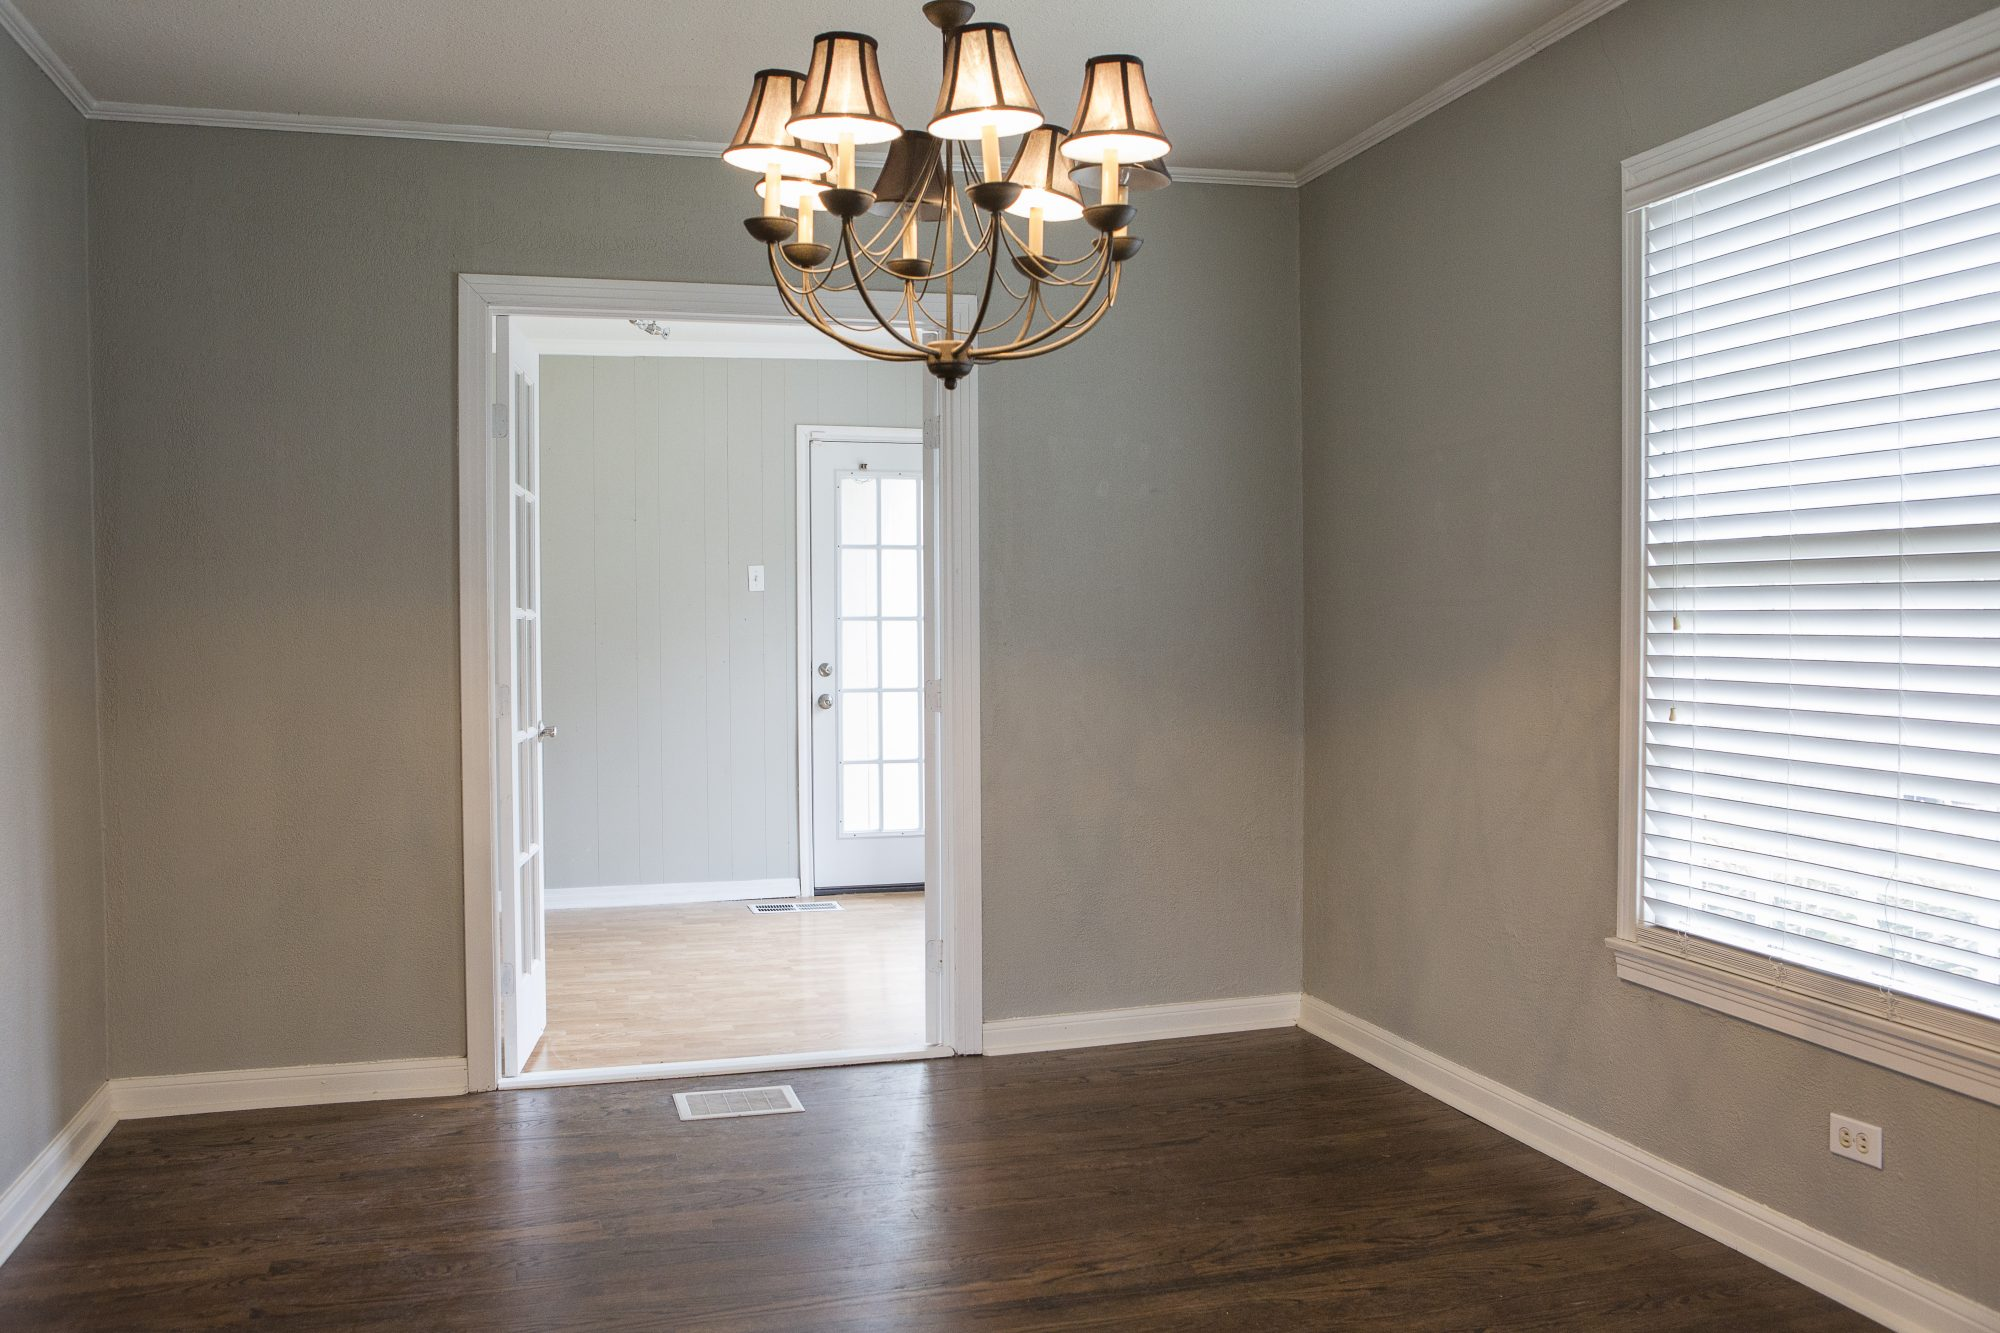 As seen on FIxer Upper, the dining room of the Baker's home. (Before)